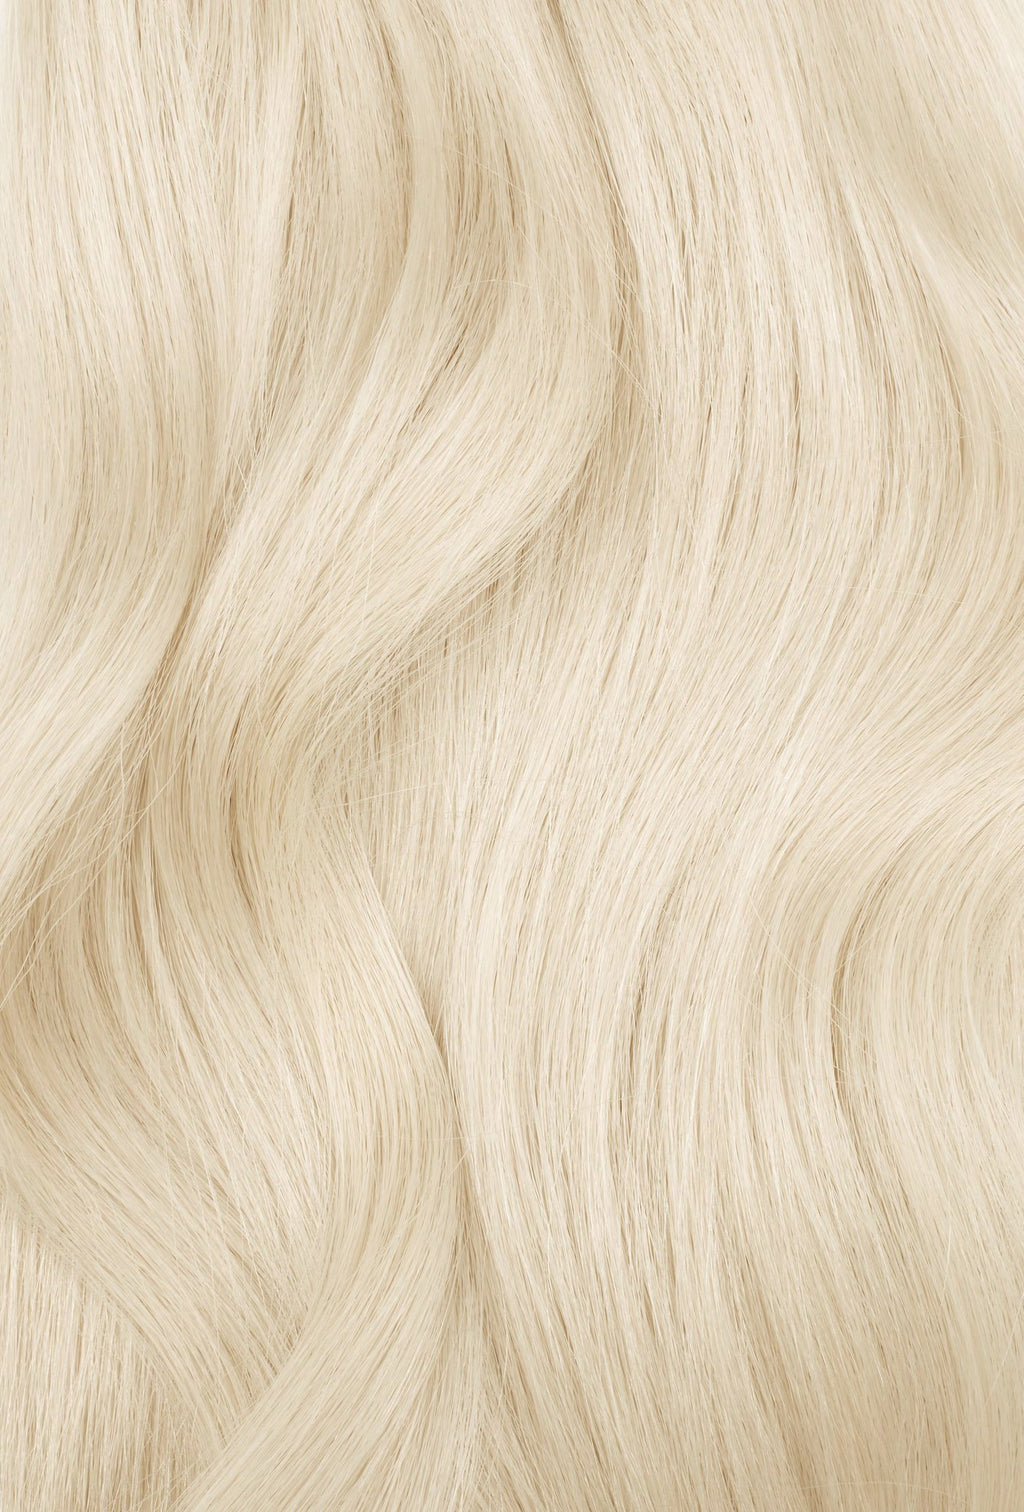 "Ash Blonde (#60C) 22"" Tape- ON BACKORDER"